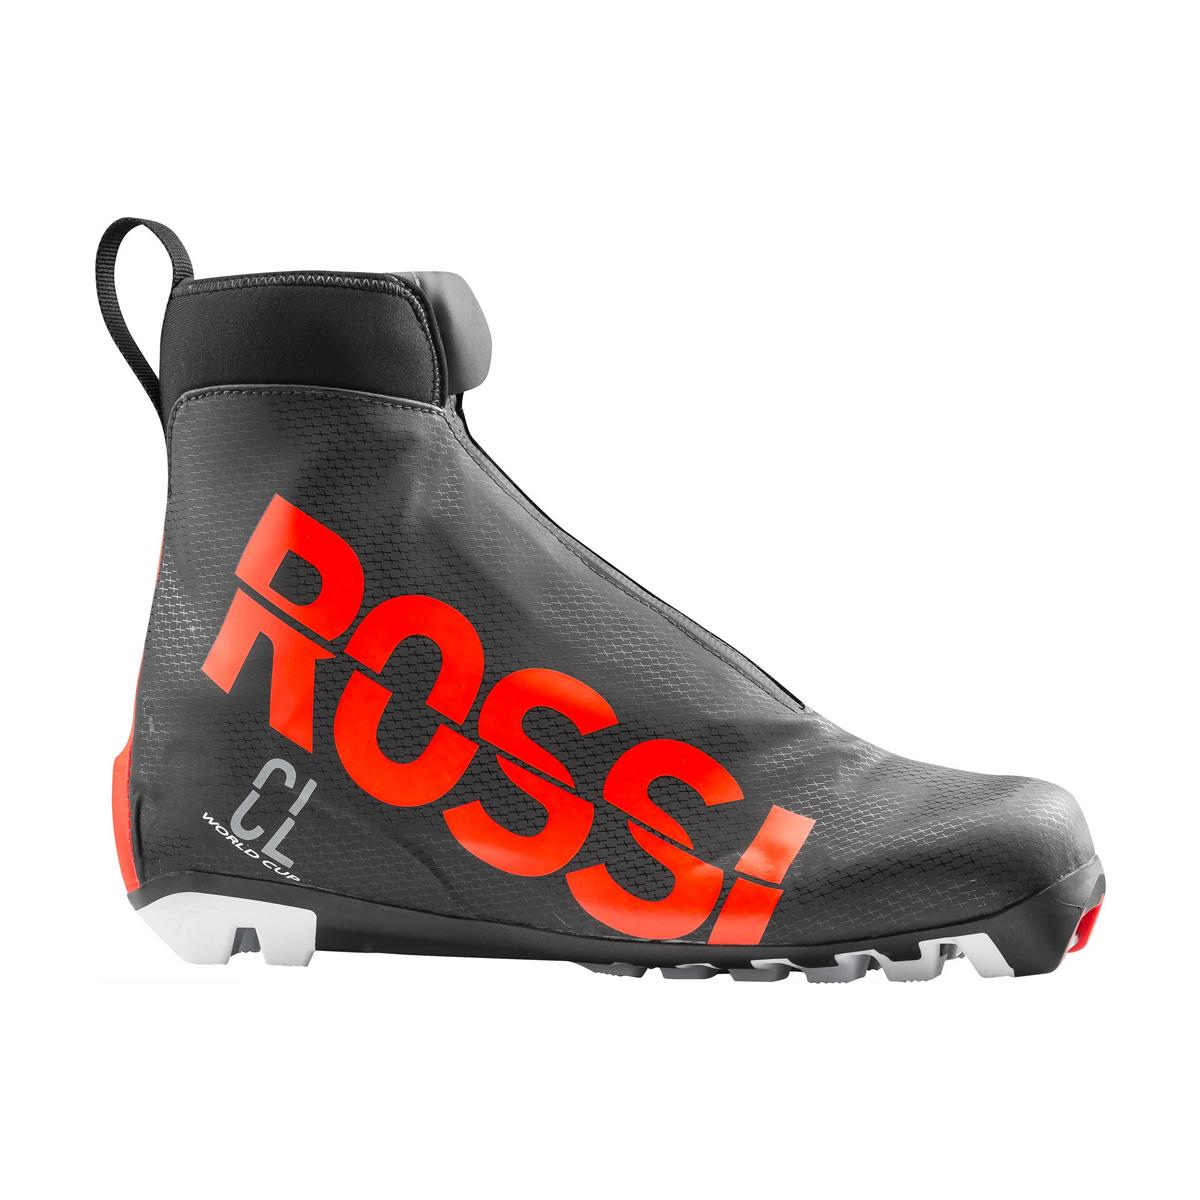 Rossignol Men's X-Ium WC Classic Boot in Black and Red